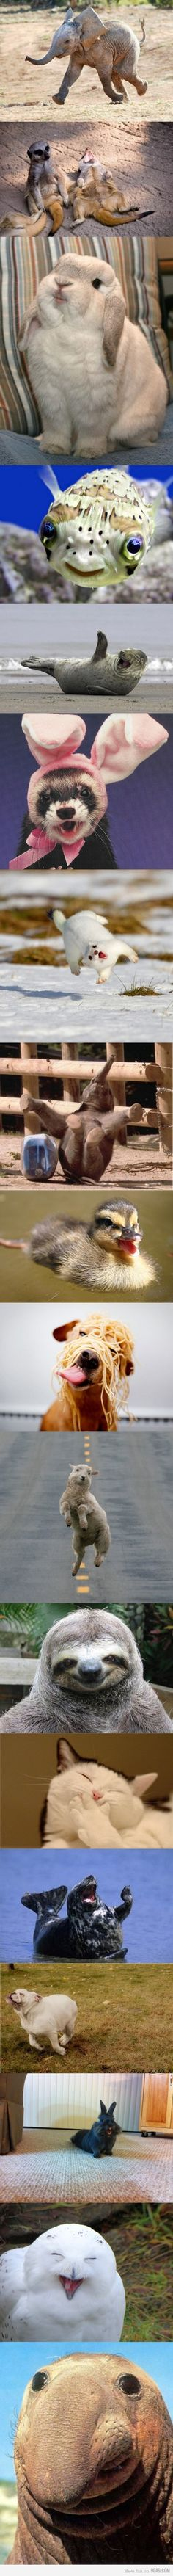 World's happiest animals! Please treasure all animals lives.